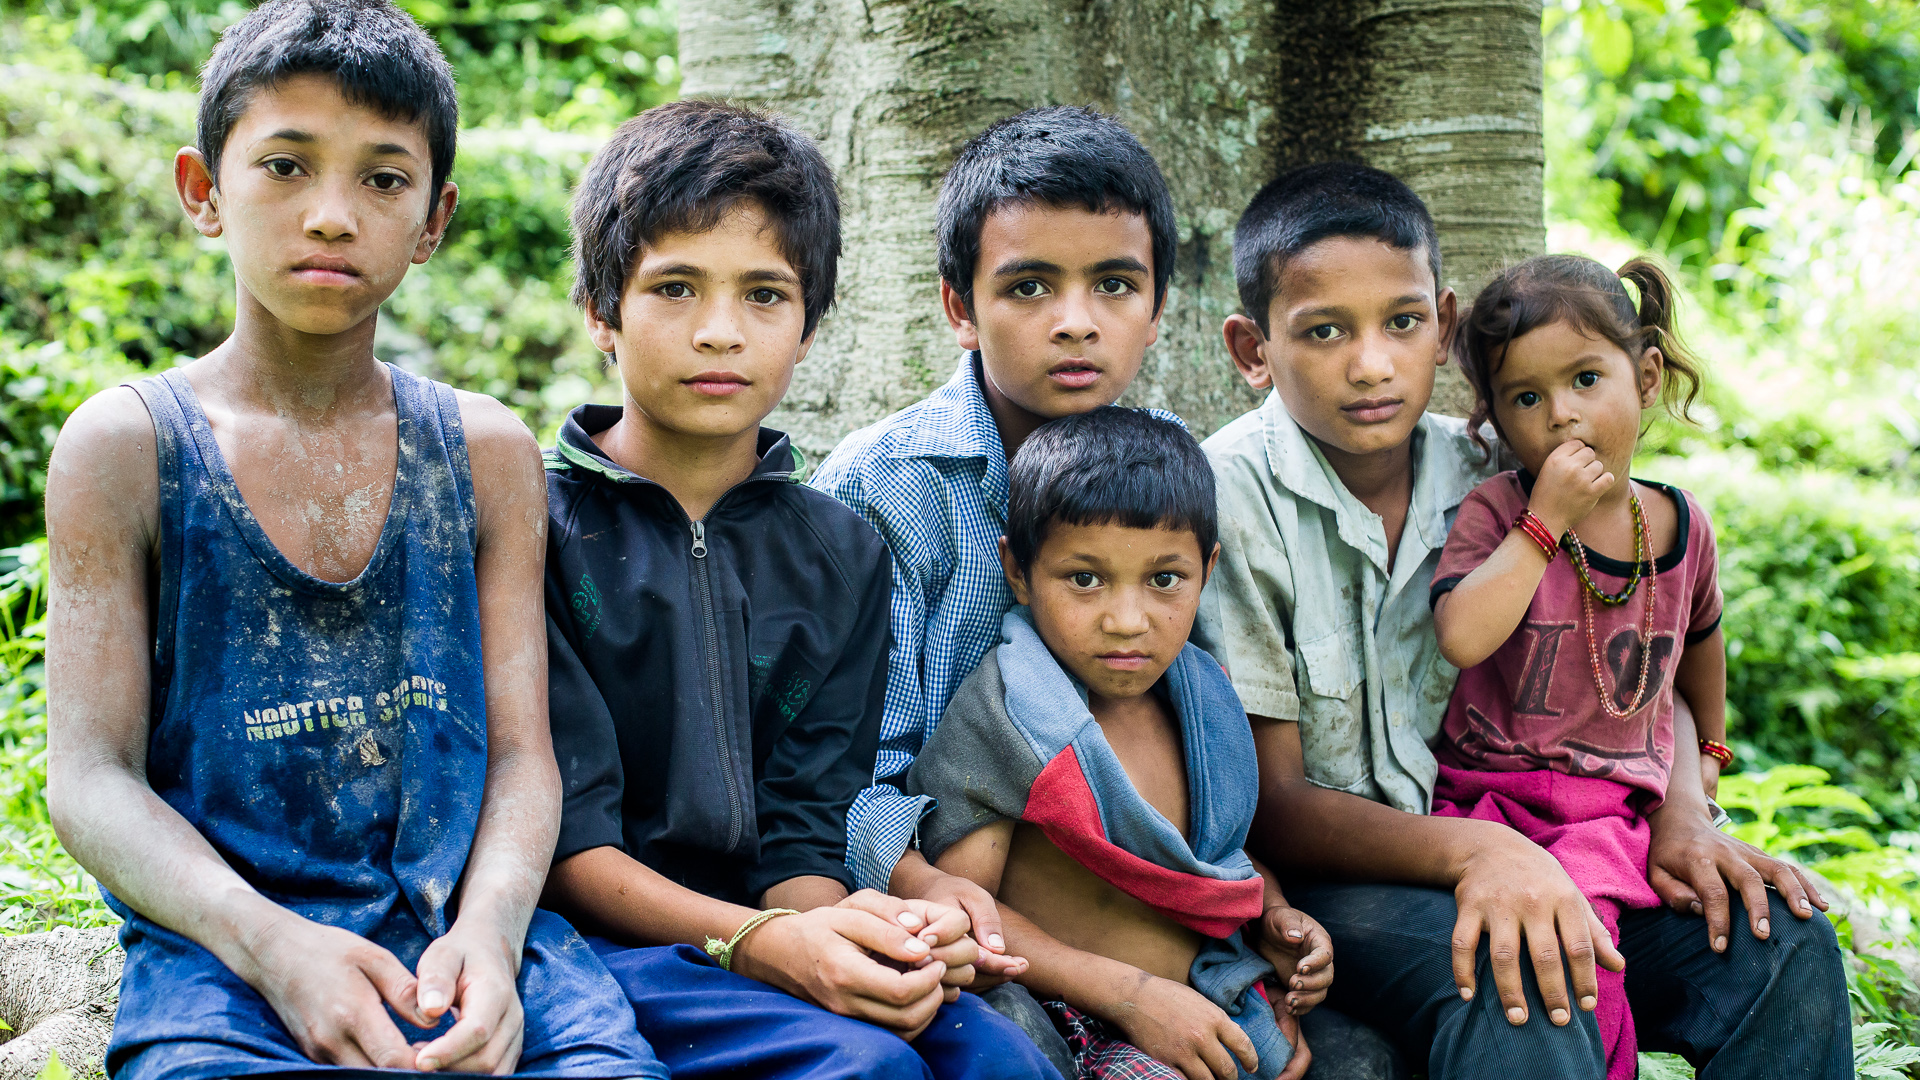 Children posing close to the fields where they were working with their parents.